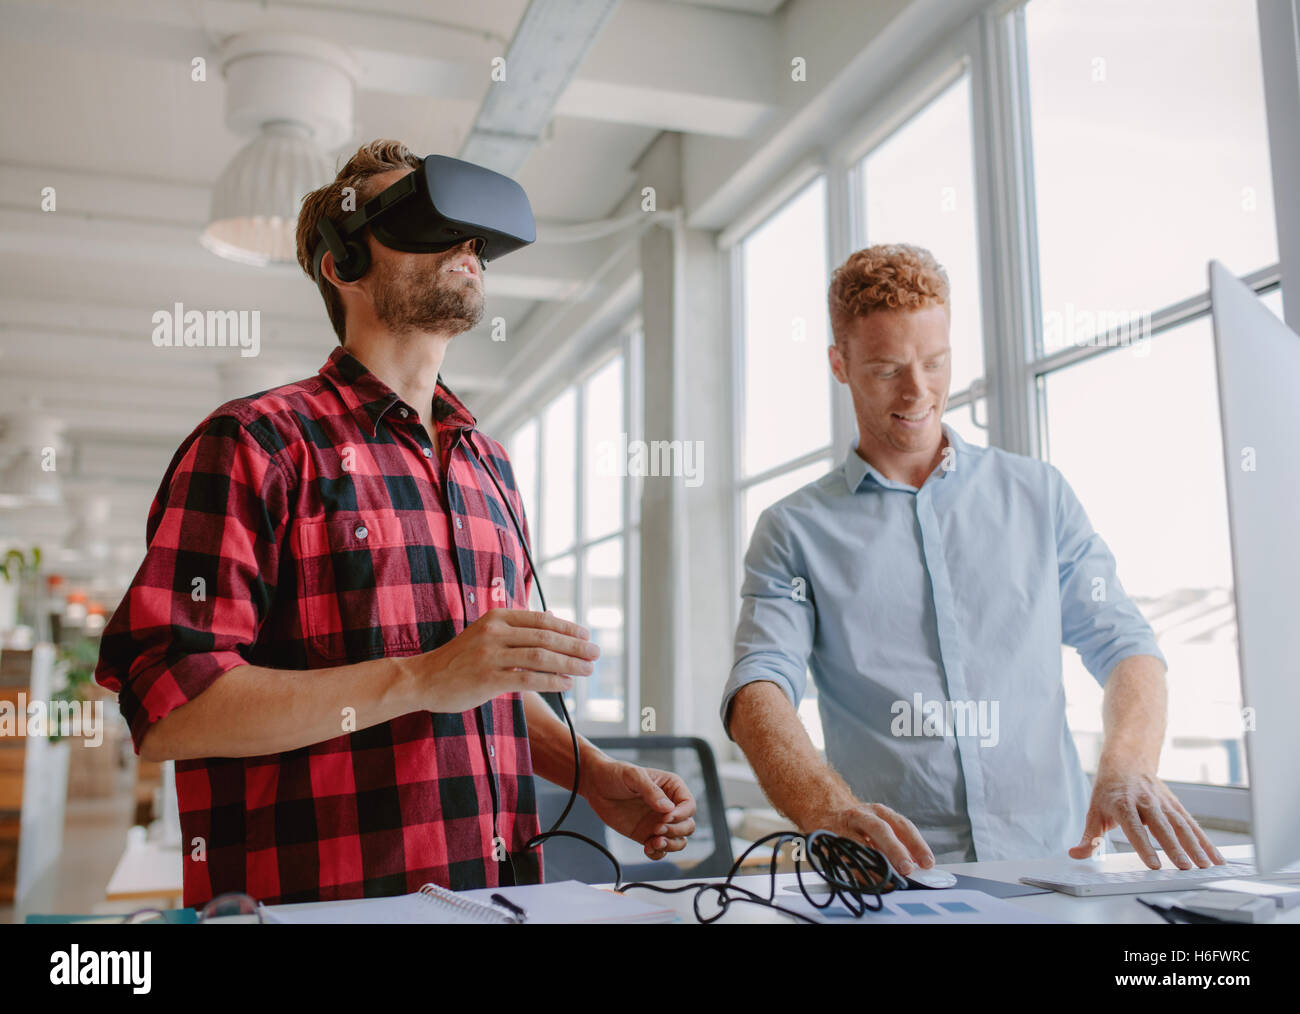 Young developer working on laptop and virtual reality glasses. Two men improving virtual reality glasses in office. - Stock Image